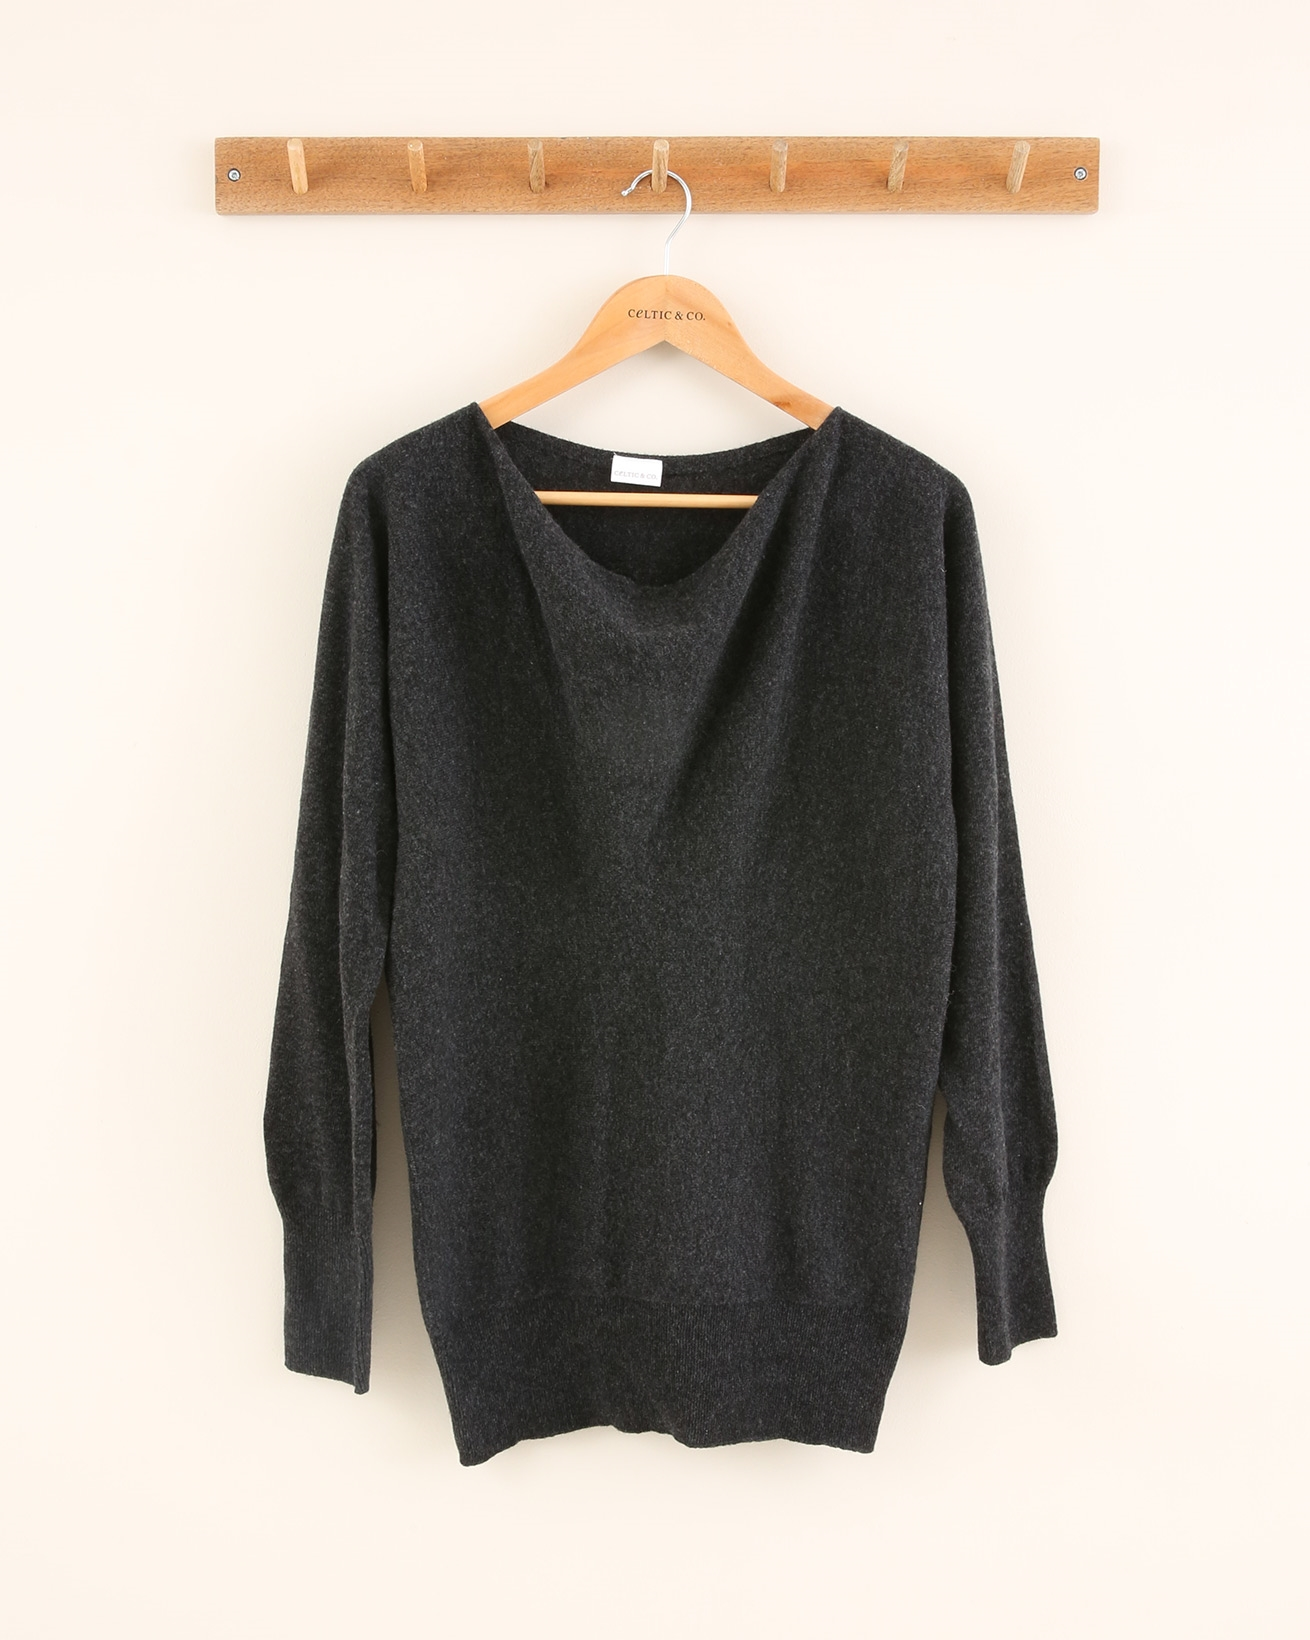 Soft Cowl Jumper - Size Small - Charcoal - 1828